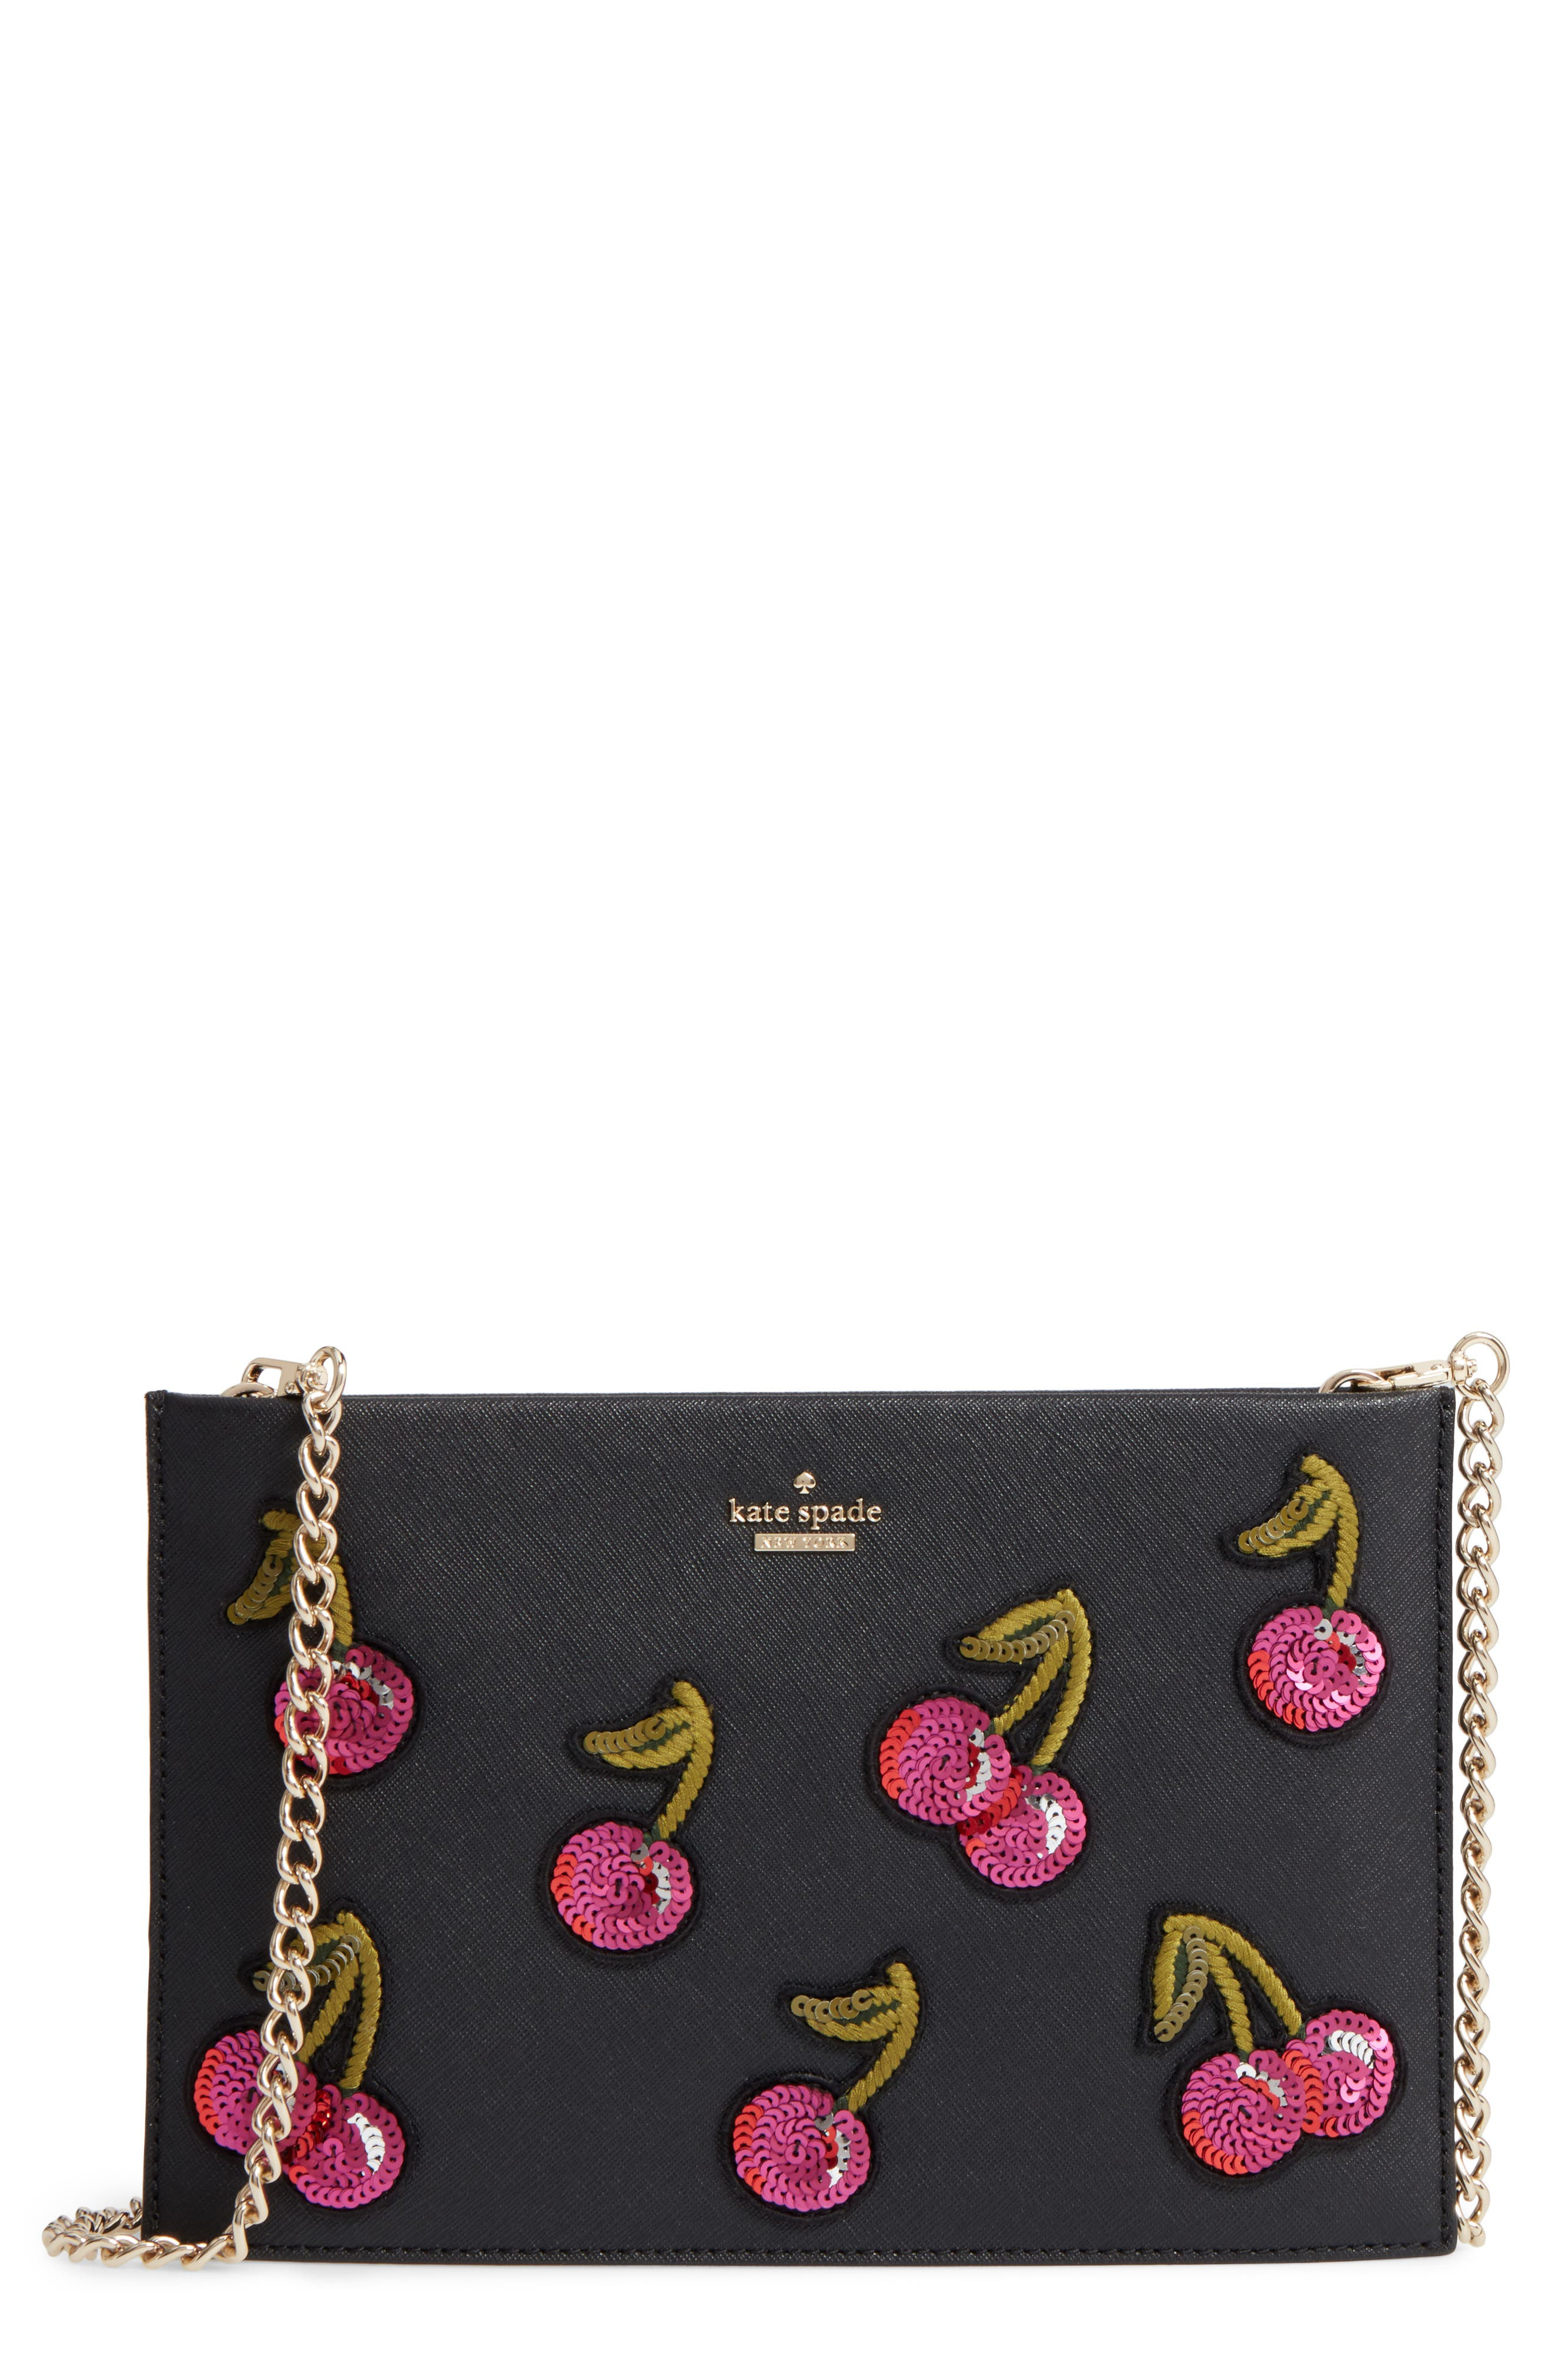 KATE SPADE NEW YORK ma cherie - cherries sima leather shoulder bag